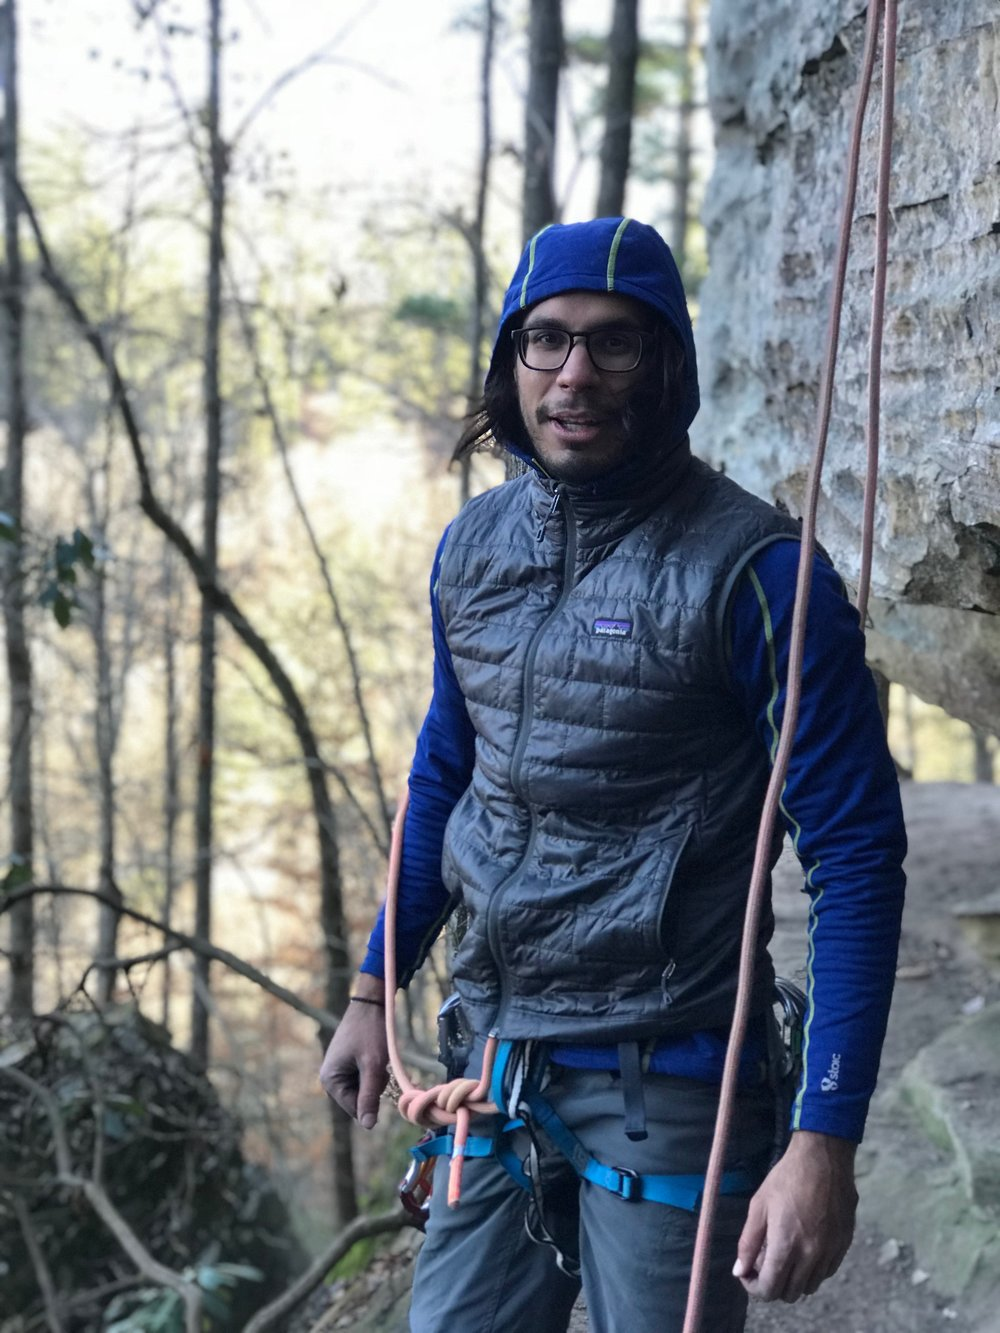 Nick climbing in the Red River Gorge, KY